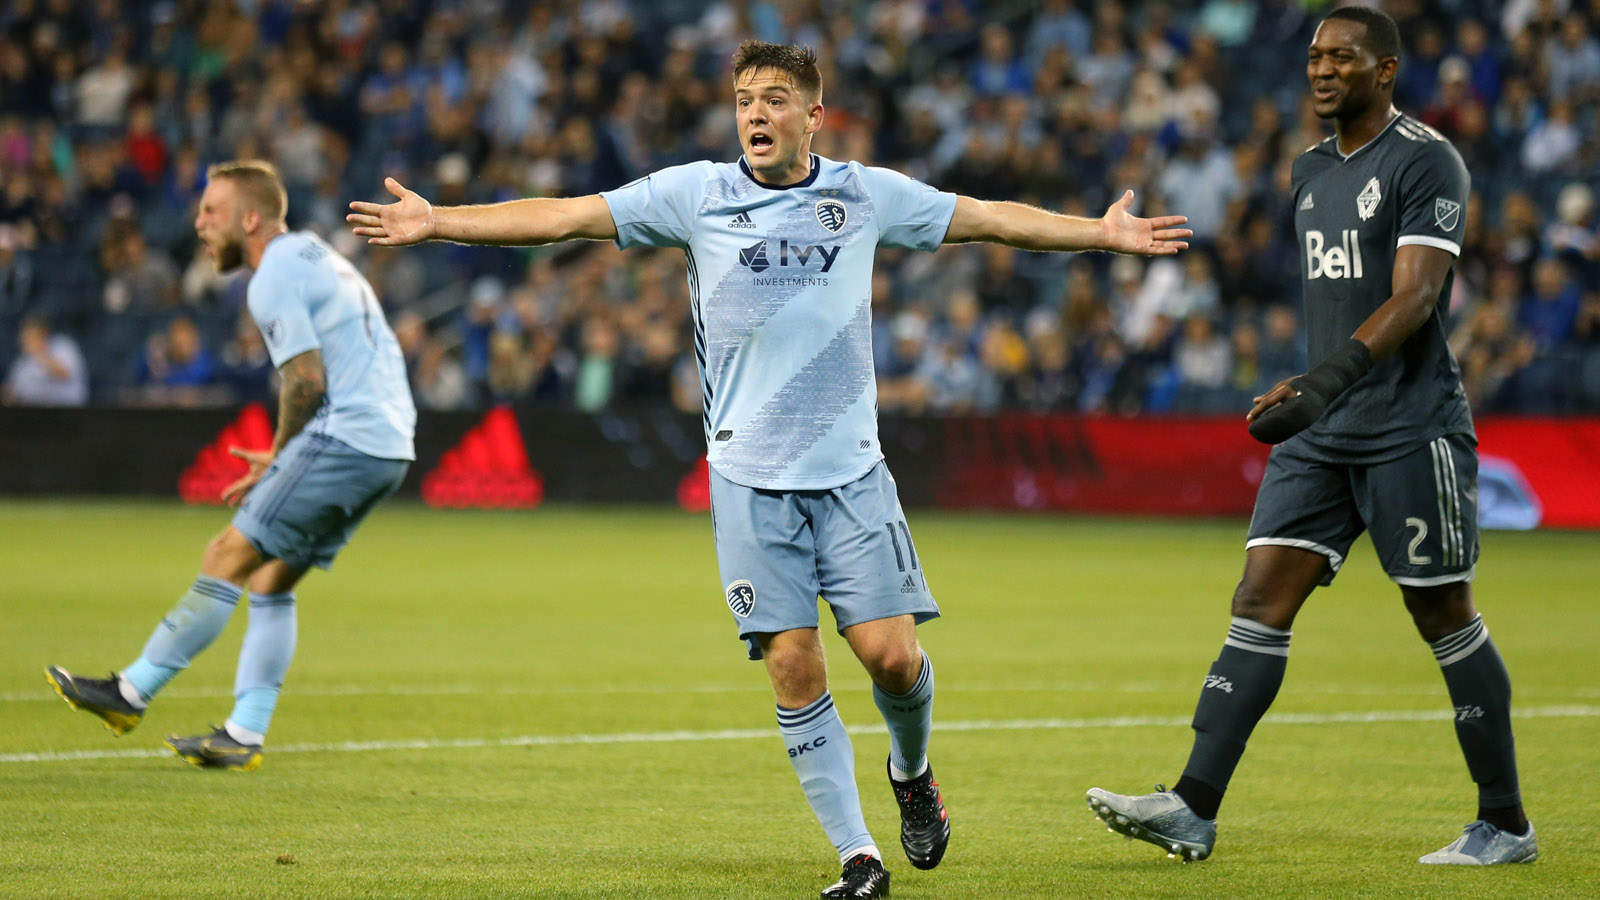 Sporting KC trades Kelyn Rowe, receives $75K and international roster spot